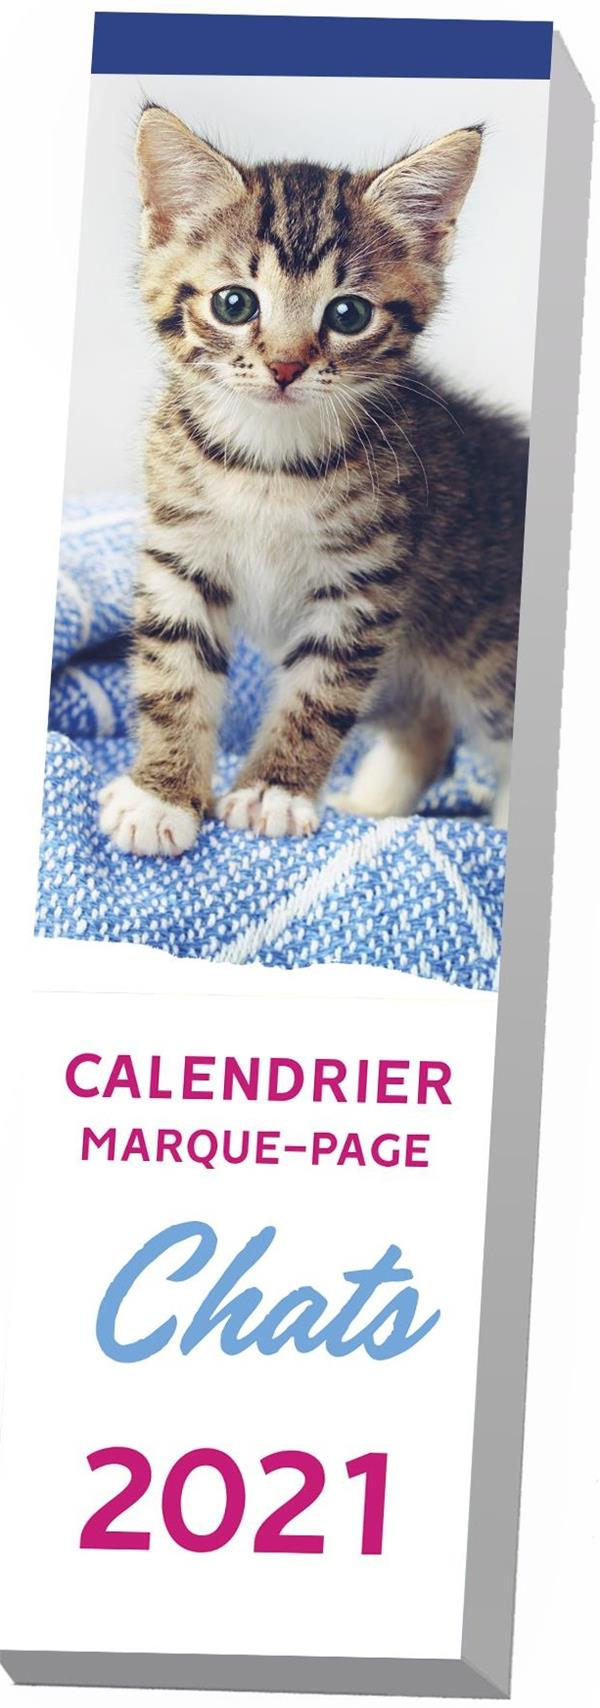 CALENDRIER MARQUE-PAGE  -  CHATS (EDITION 2021) EDITIONS 365 NC